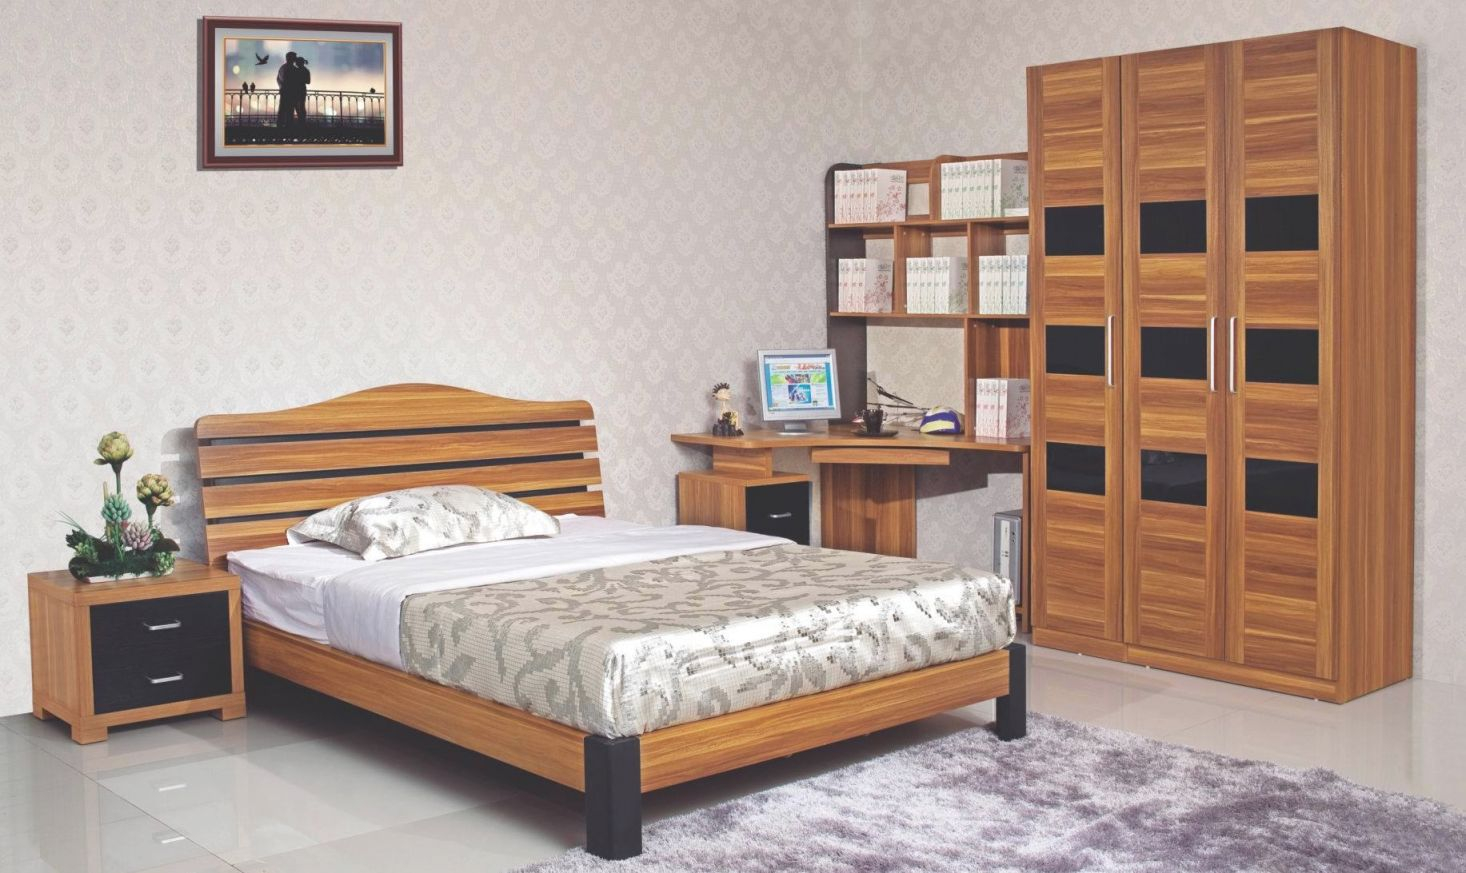 [Hot Item] 5Pcs Durable Wooden Bedroom Set With Corner Study Desk (Hh21Bt) within Bedroom Set With Desk